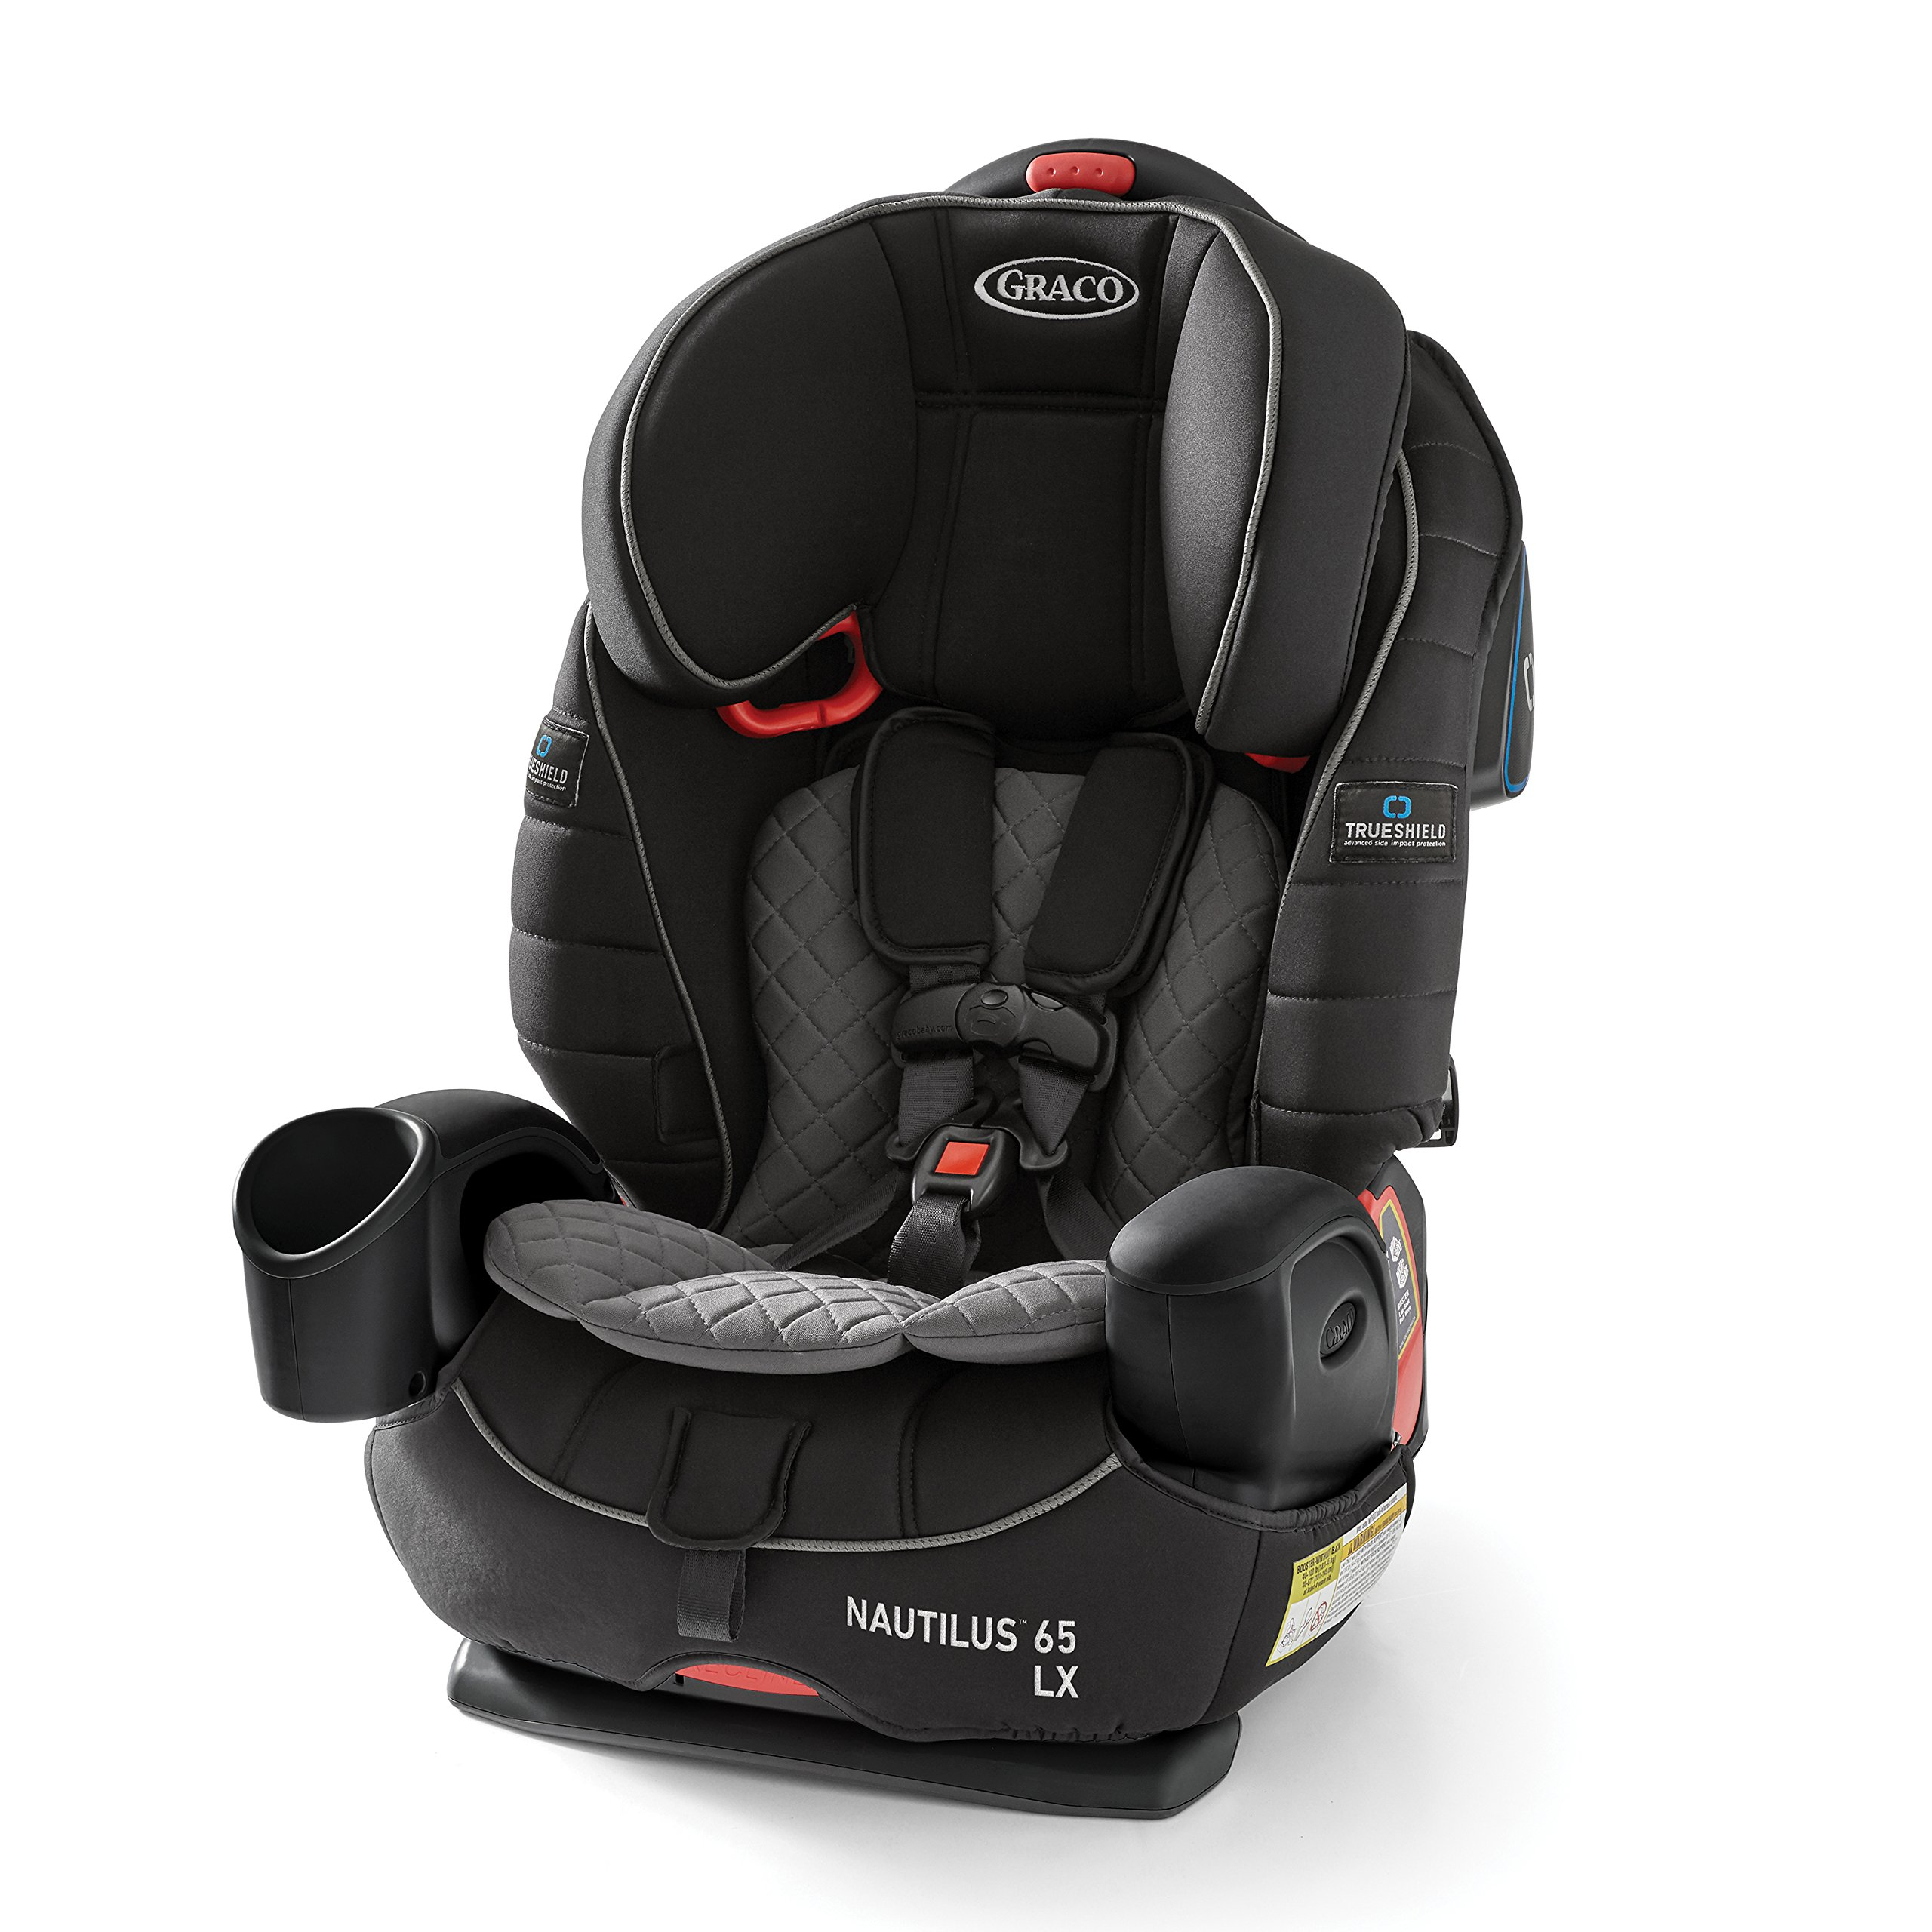 Graco Nautilus 65 LX 3 In 1 Harness Booster Featuring TrueShield Technology